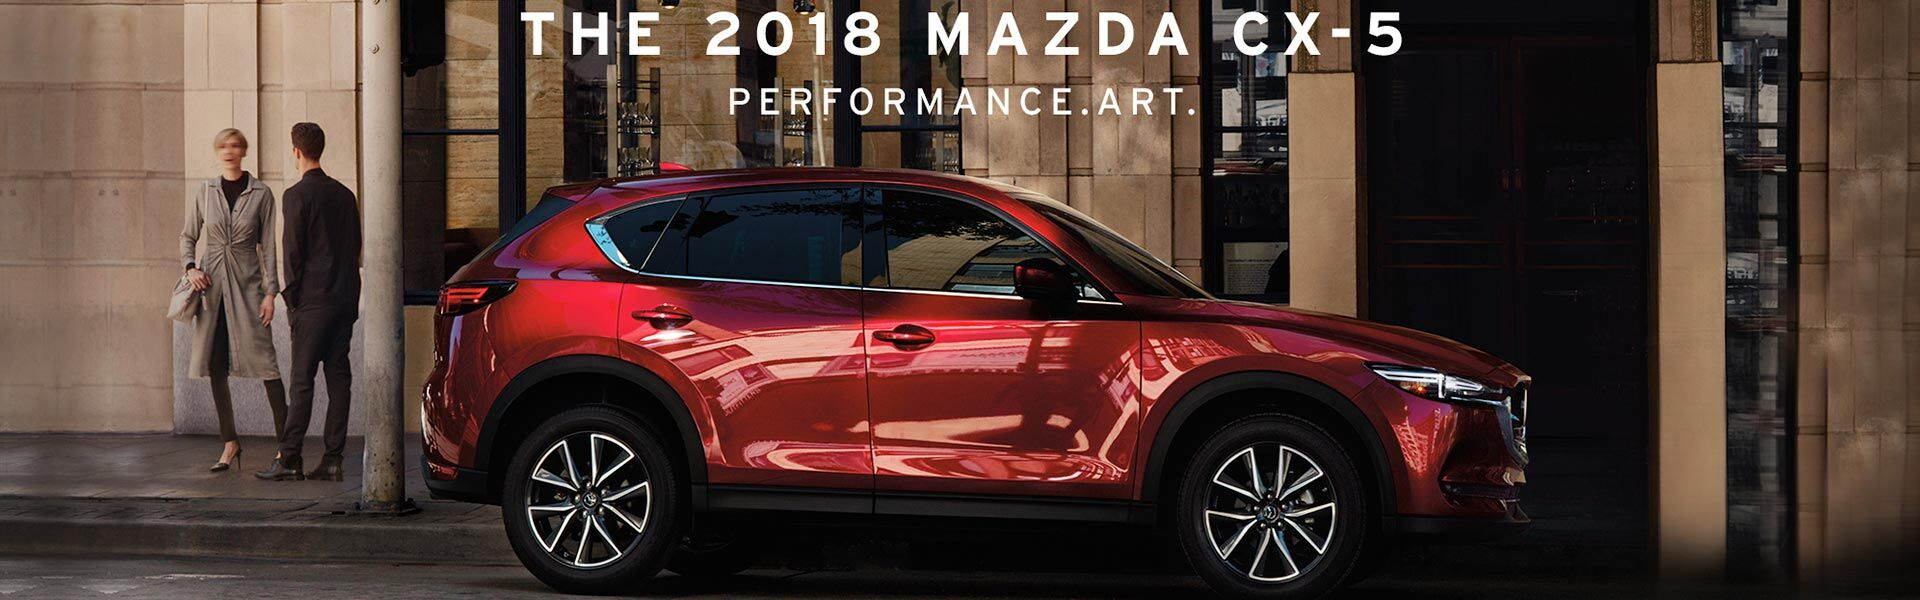 the 2018 Mazda CX-5 at Santa Fe Cars